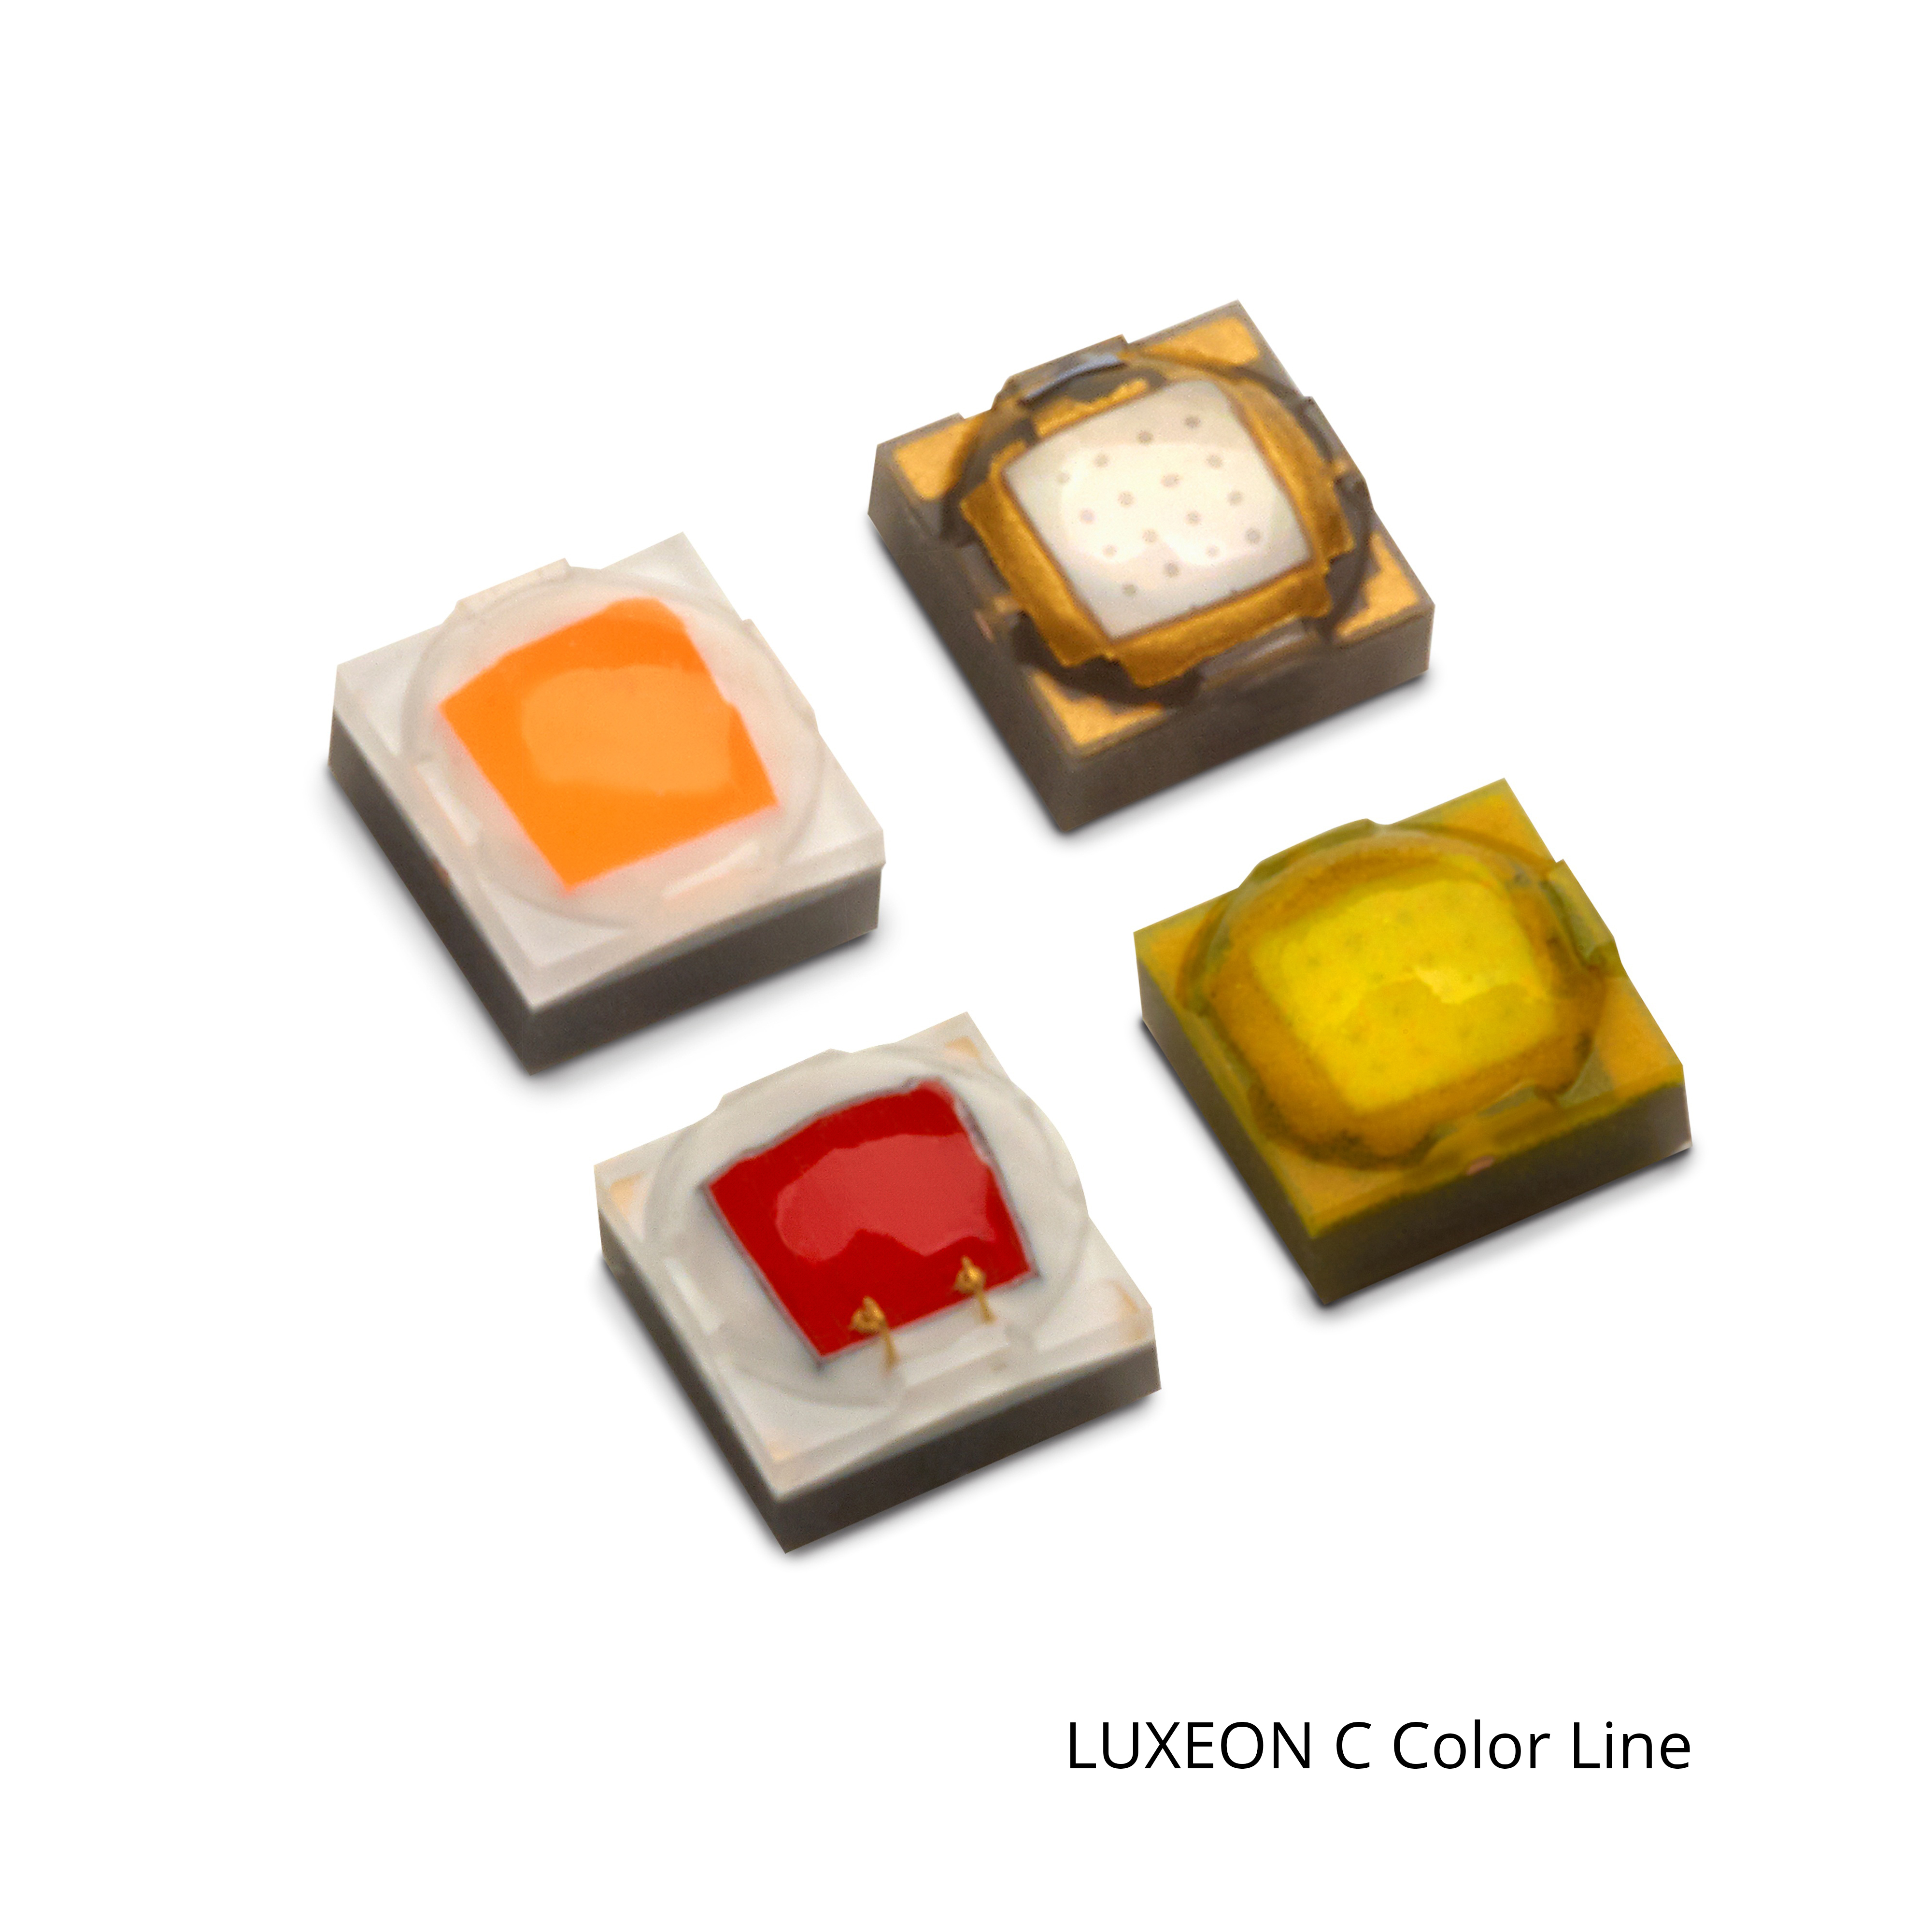 LUXEON C Colors Group(4)_Angle_ProductName